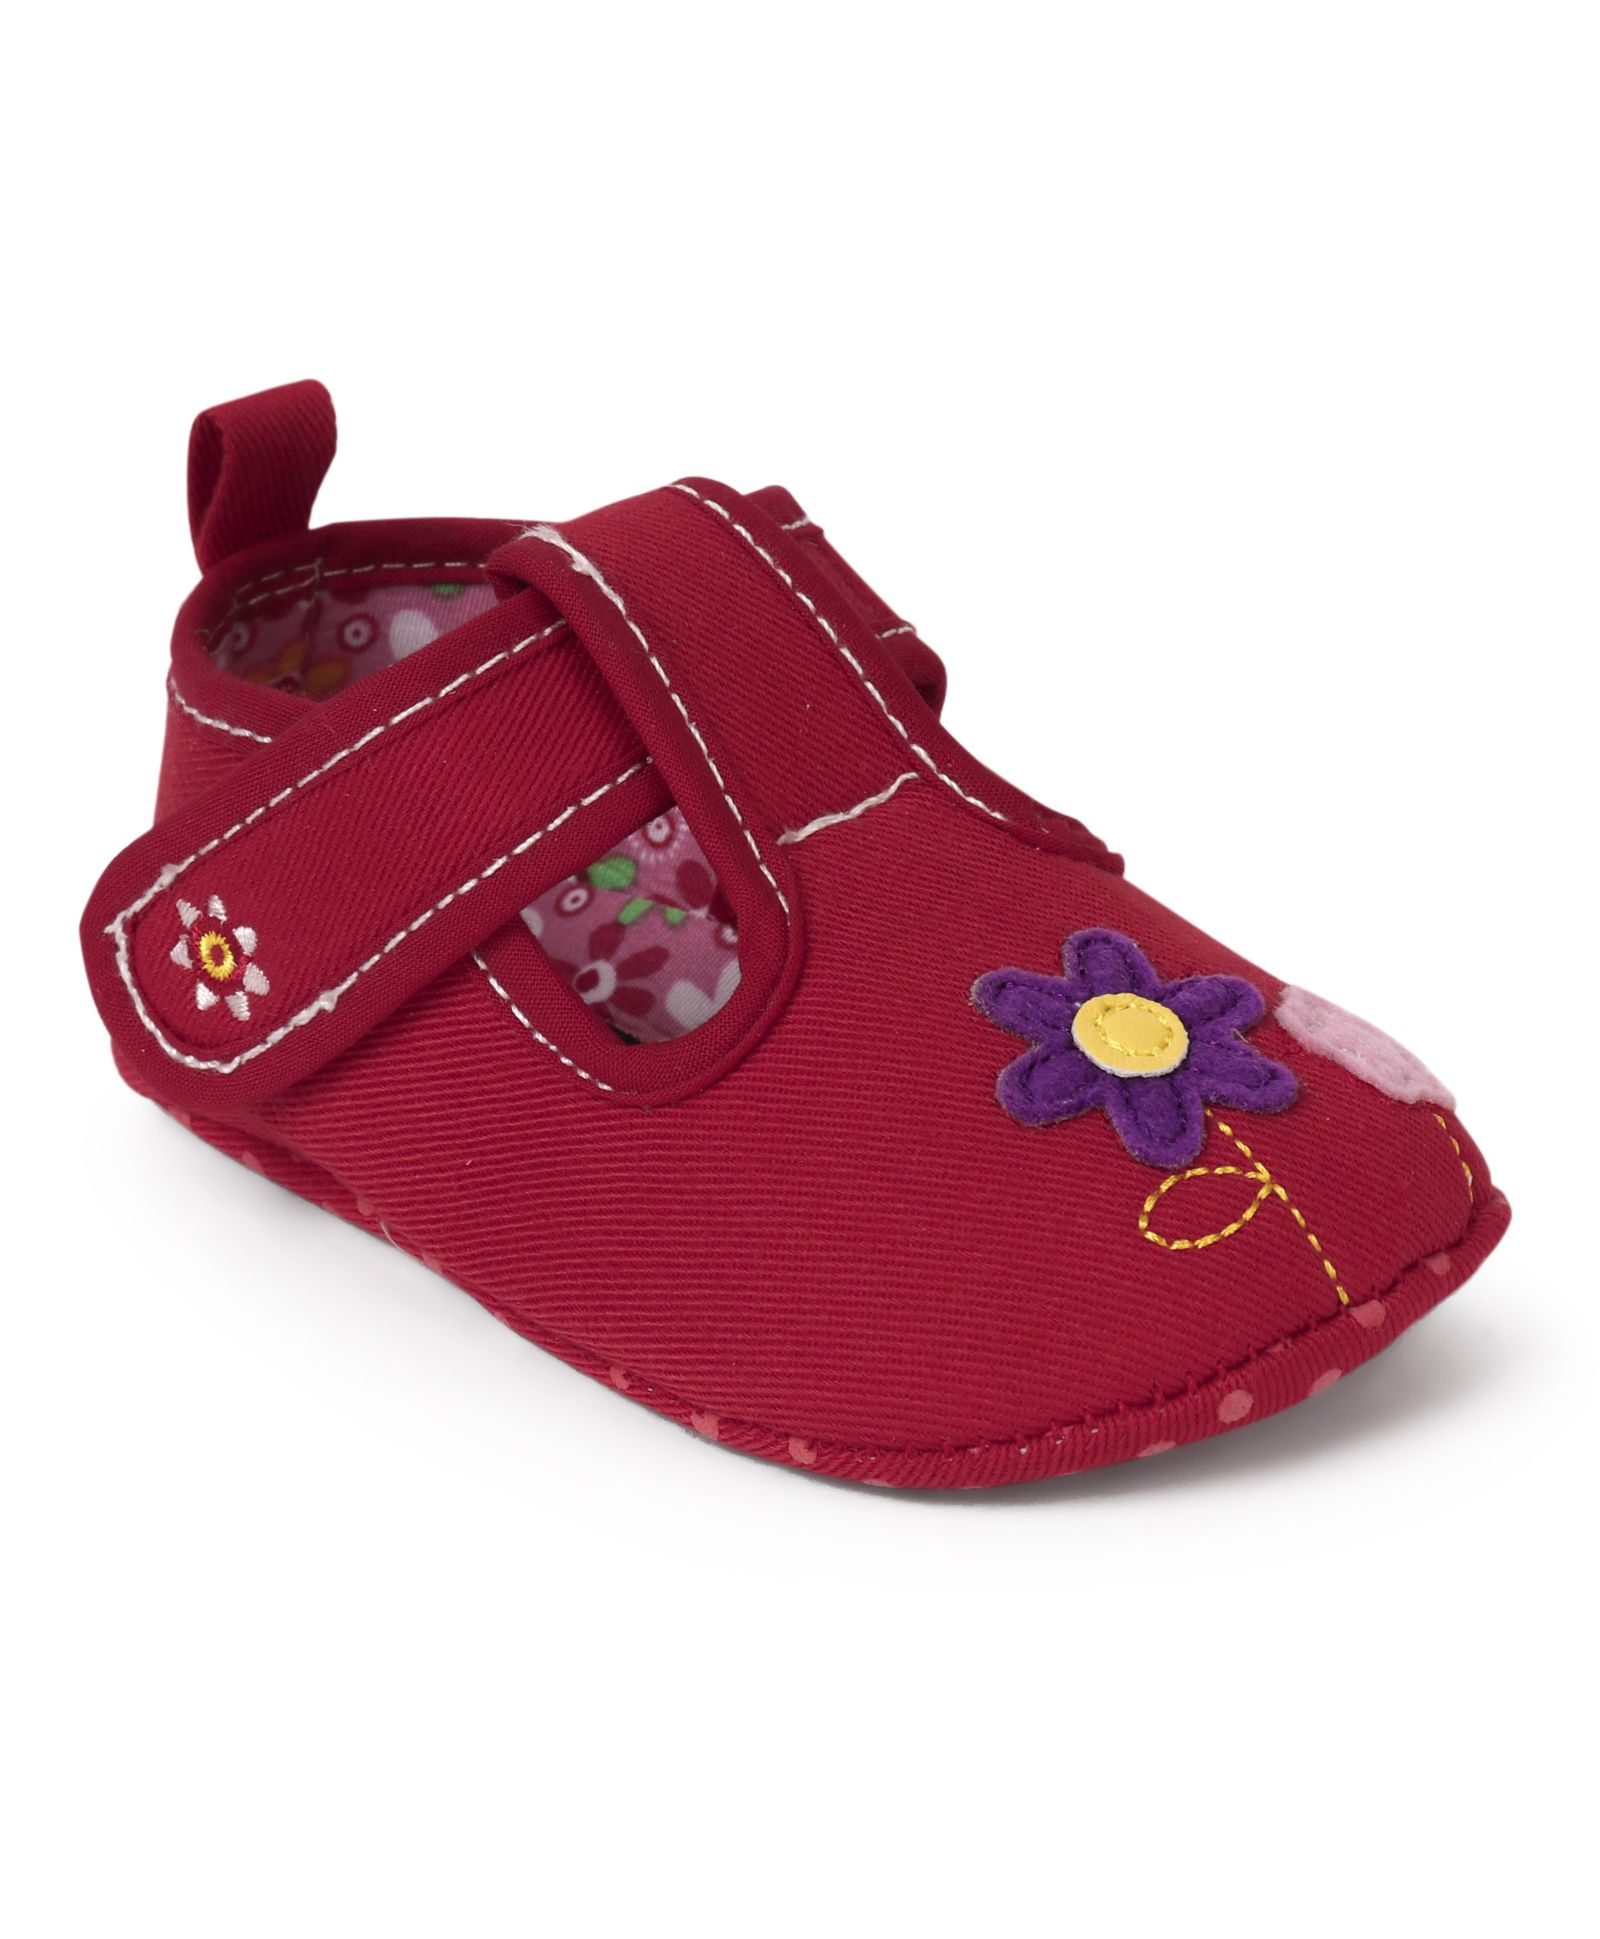 0d6d4f83c68 Buy Cute Walk by Babyhug Belly Booties Floral Patch Red for Girls (0-3  Months) Online, Shop at FirstCry.com - 1816210